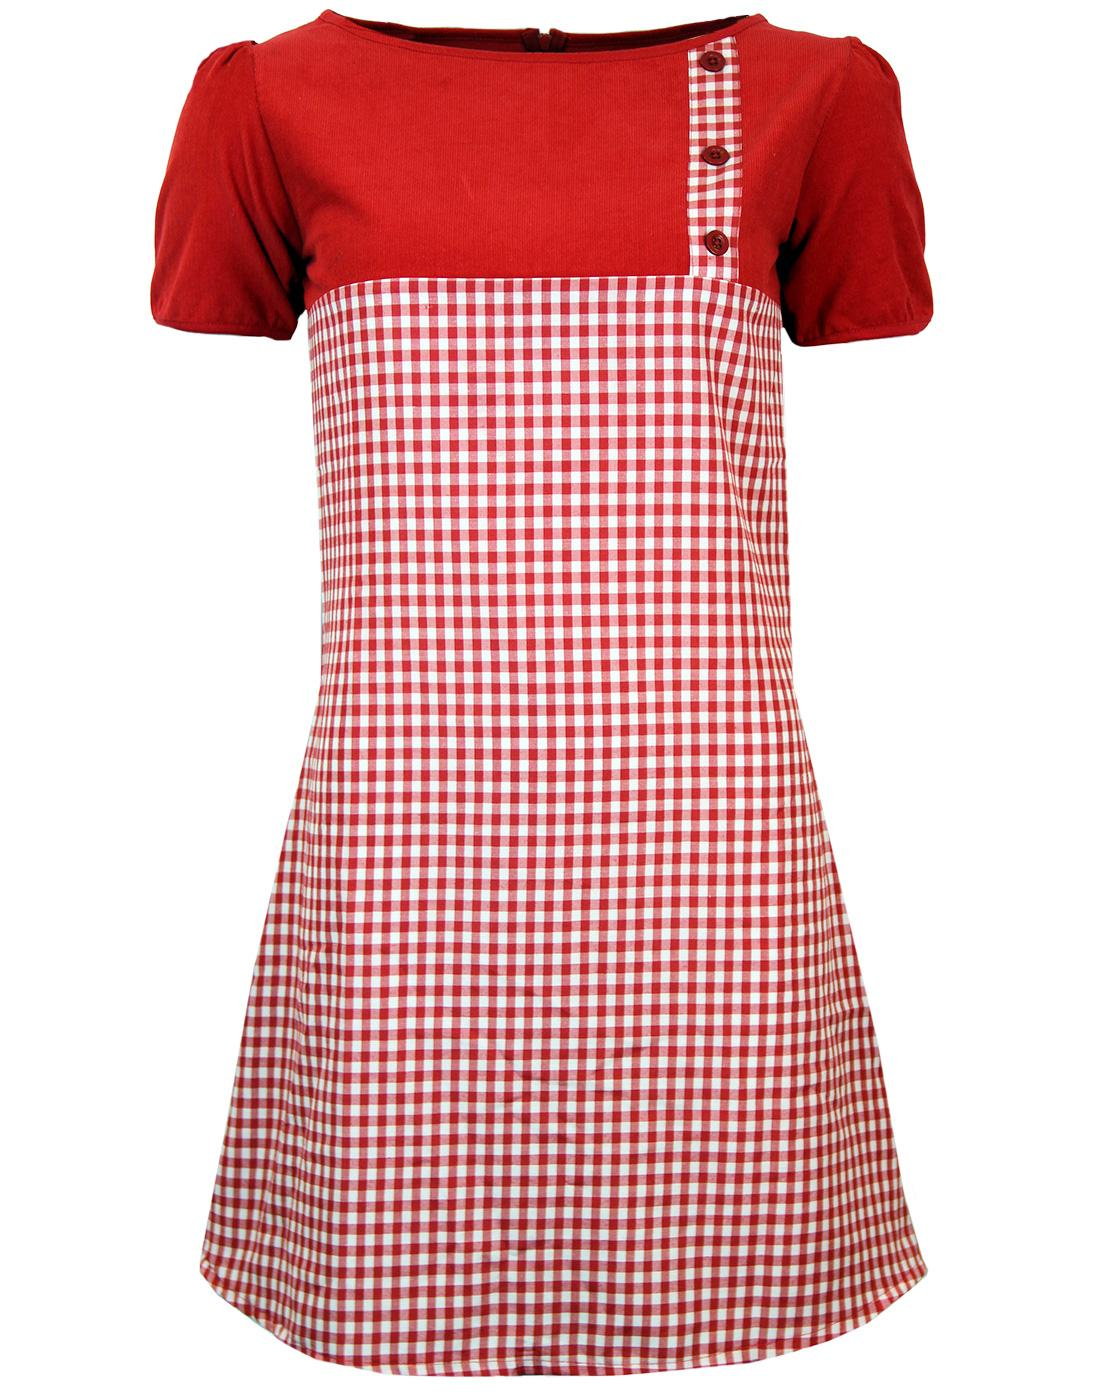 Lucy in the Sky MADCAP ENGLAND Mod Gingham Dress R